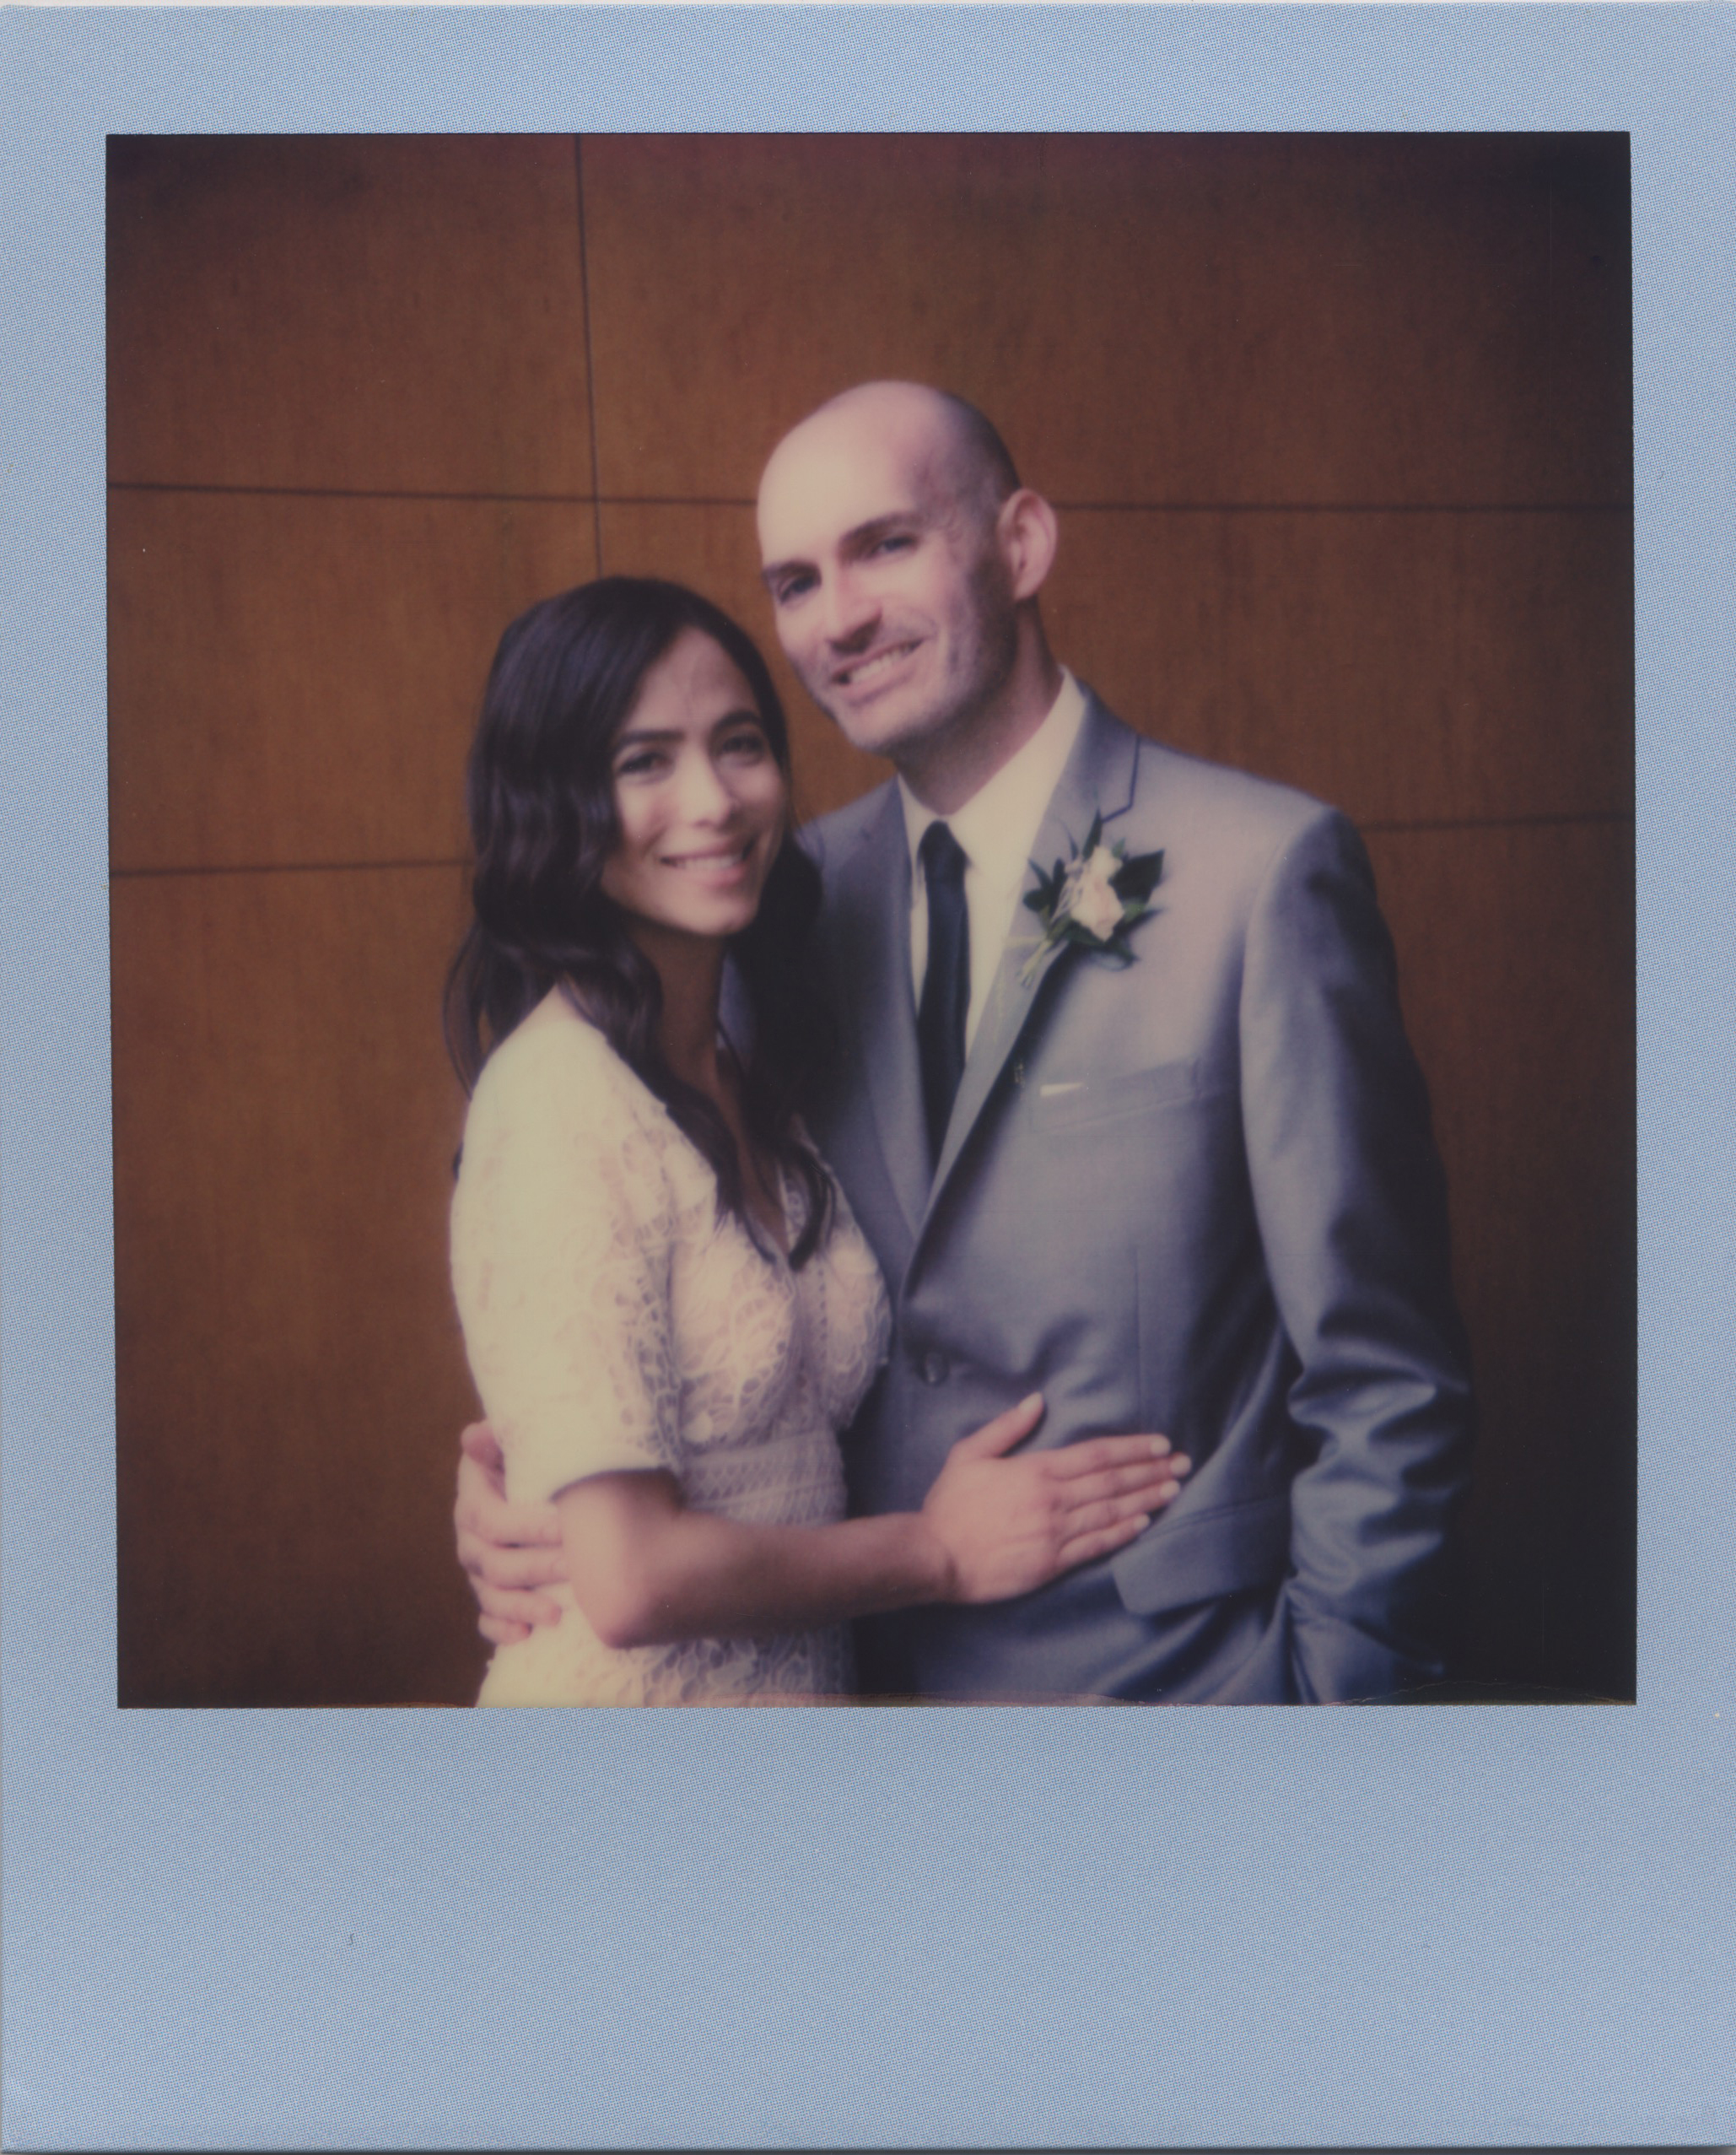 polaroidoriginal_nikitagross_wedding (2).jpeg